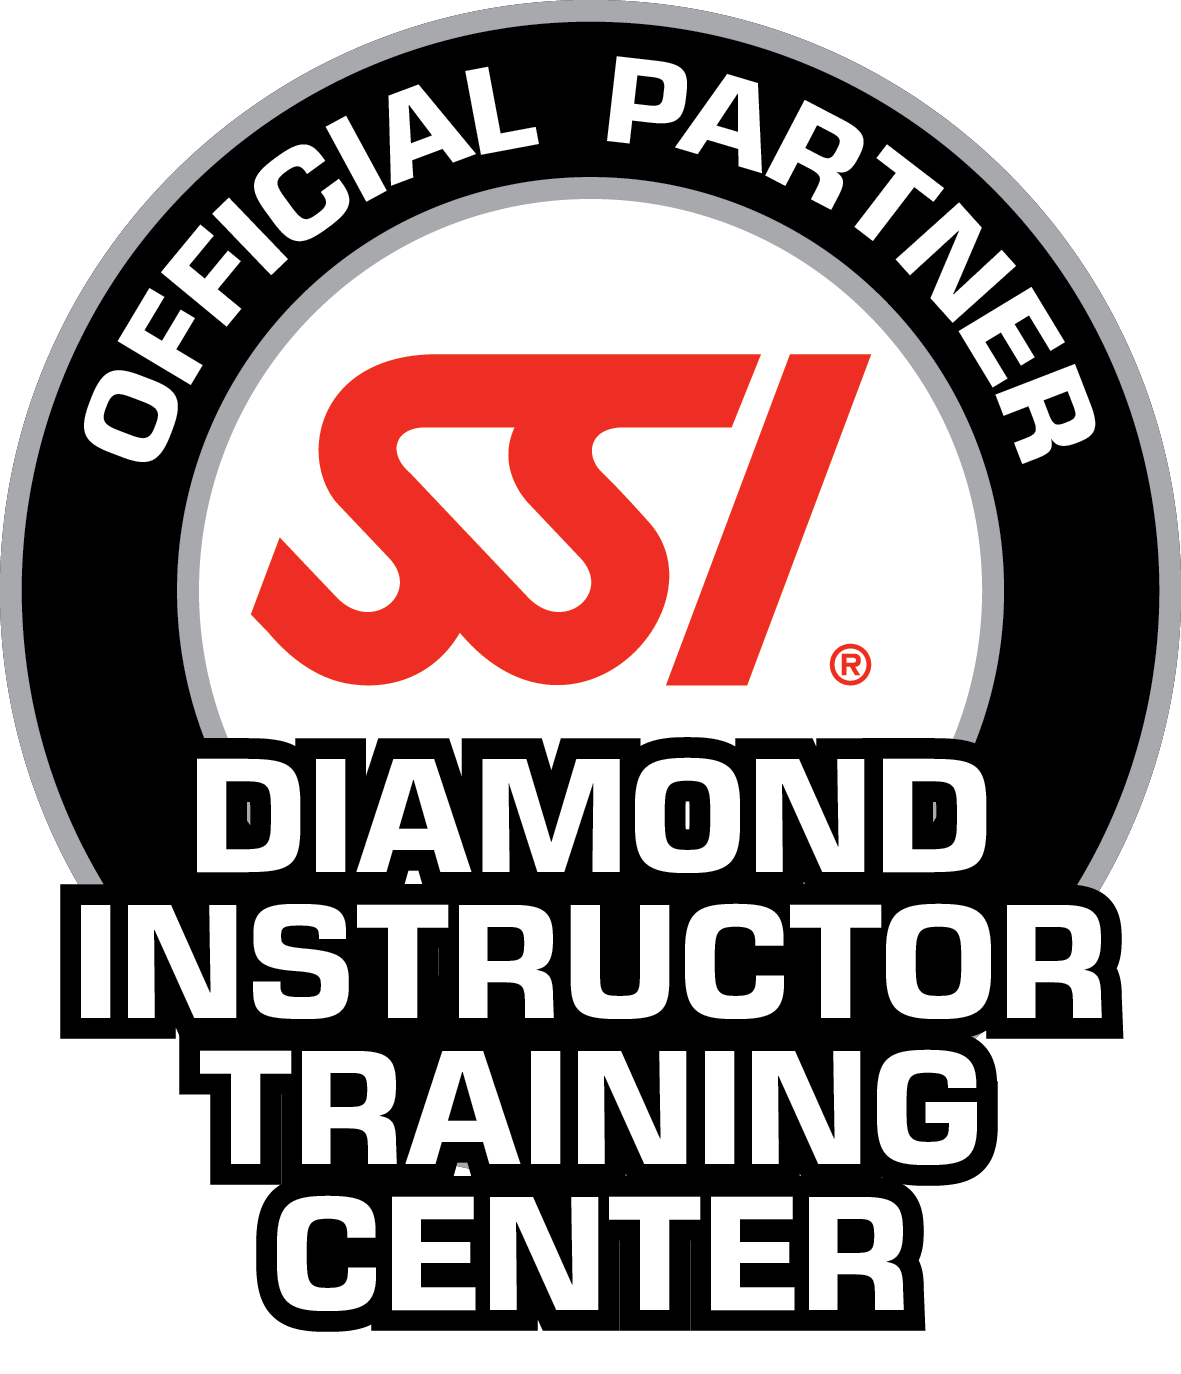 SSI LOGO DIAMOND INST TR CENTER RGB PNG